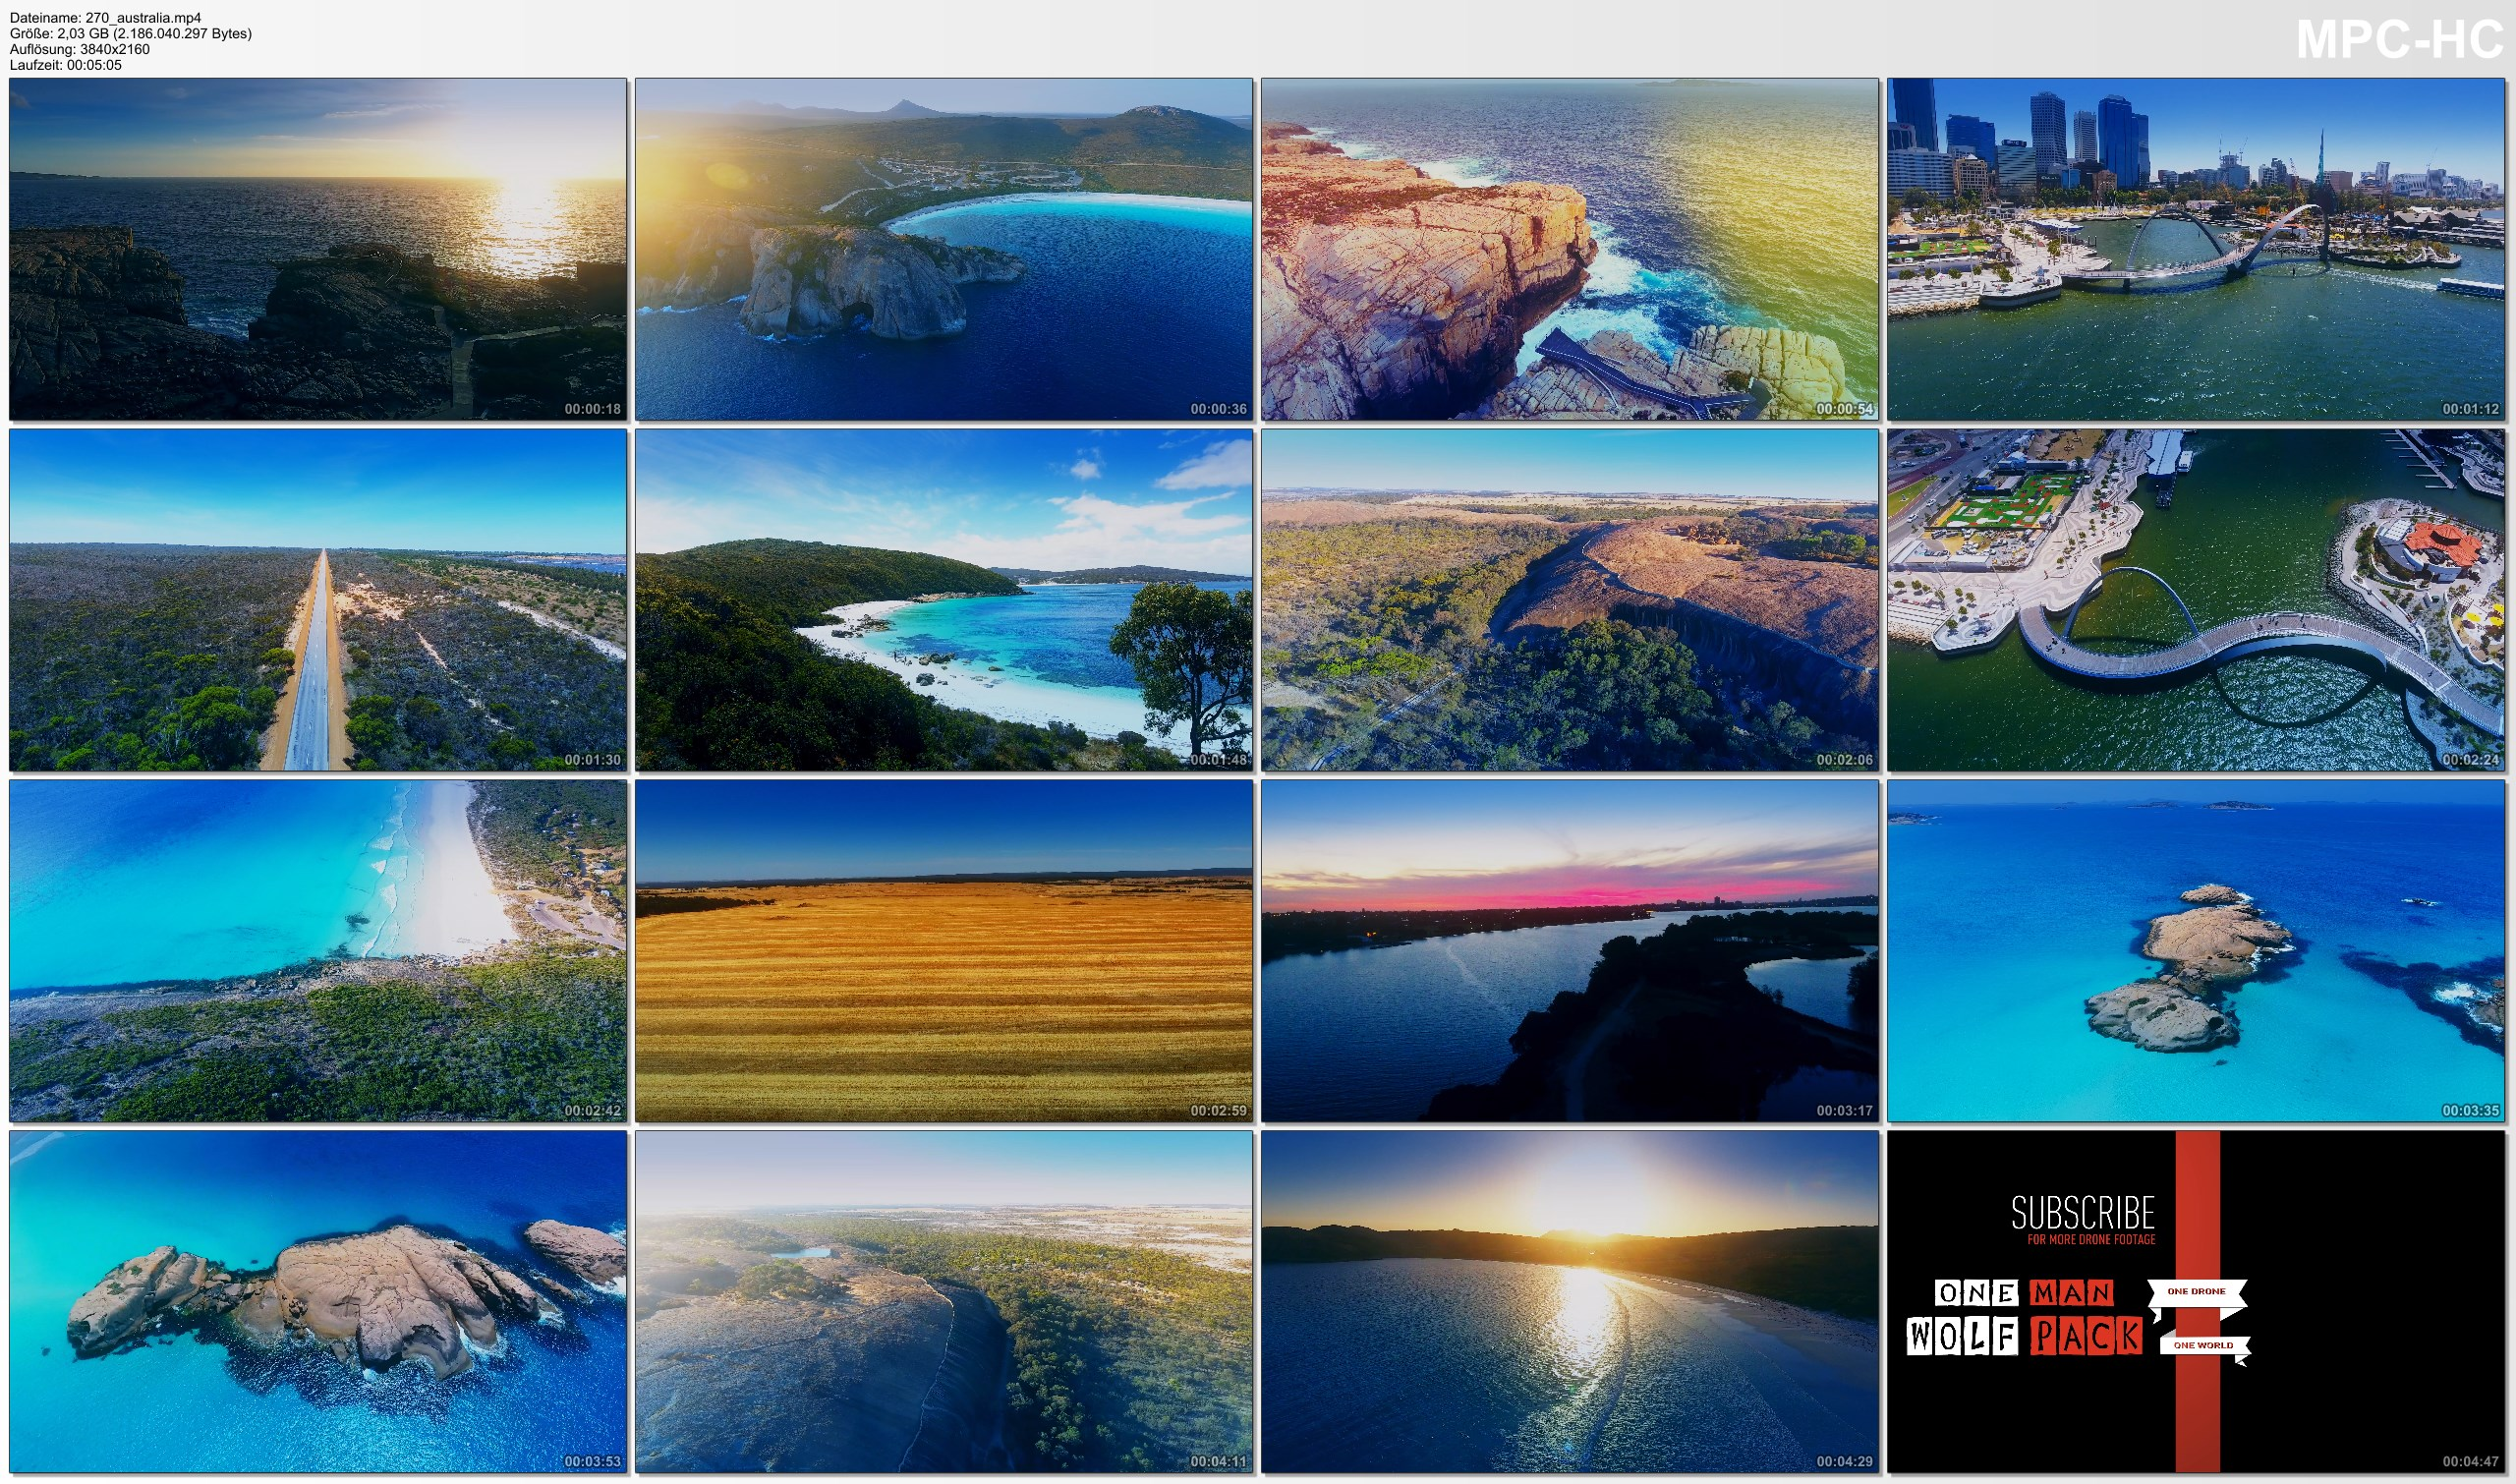 Drone Pictures from Video 【4K】Drone RAW Footage   This is AUSTRALIA 2020   Perth   Cape Le Grand   WA   Cinematic Aerial Film